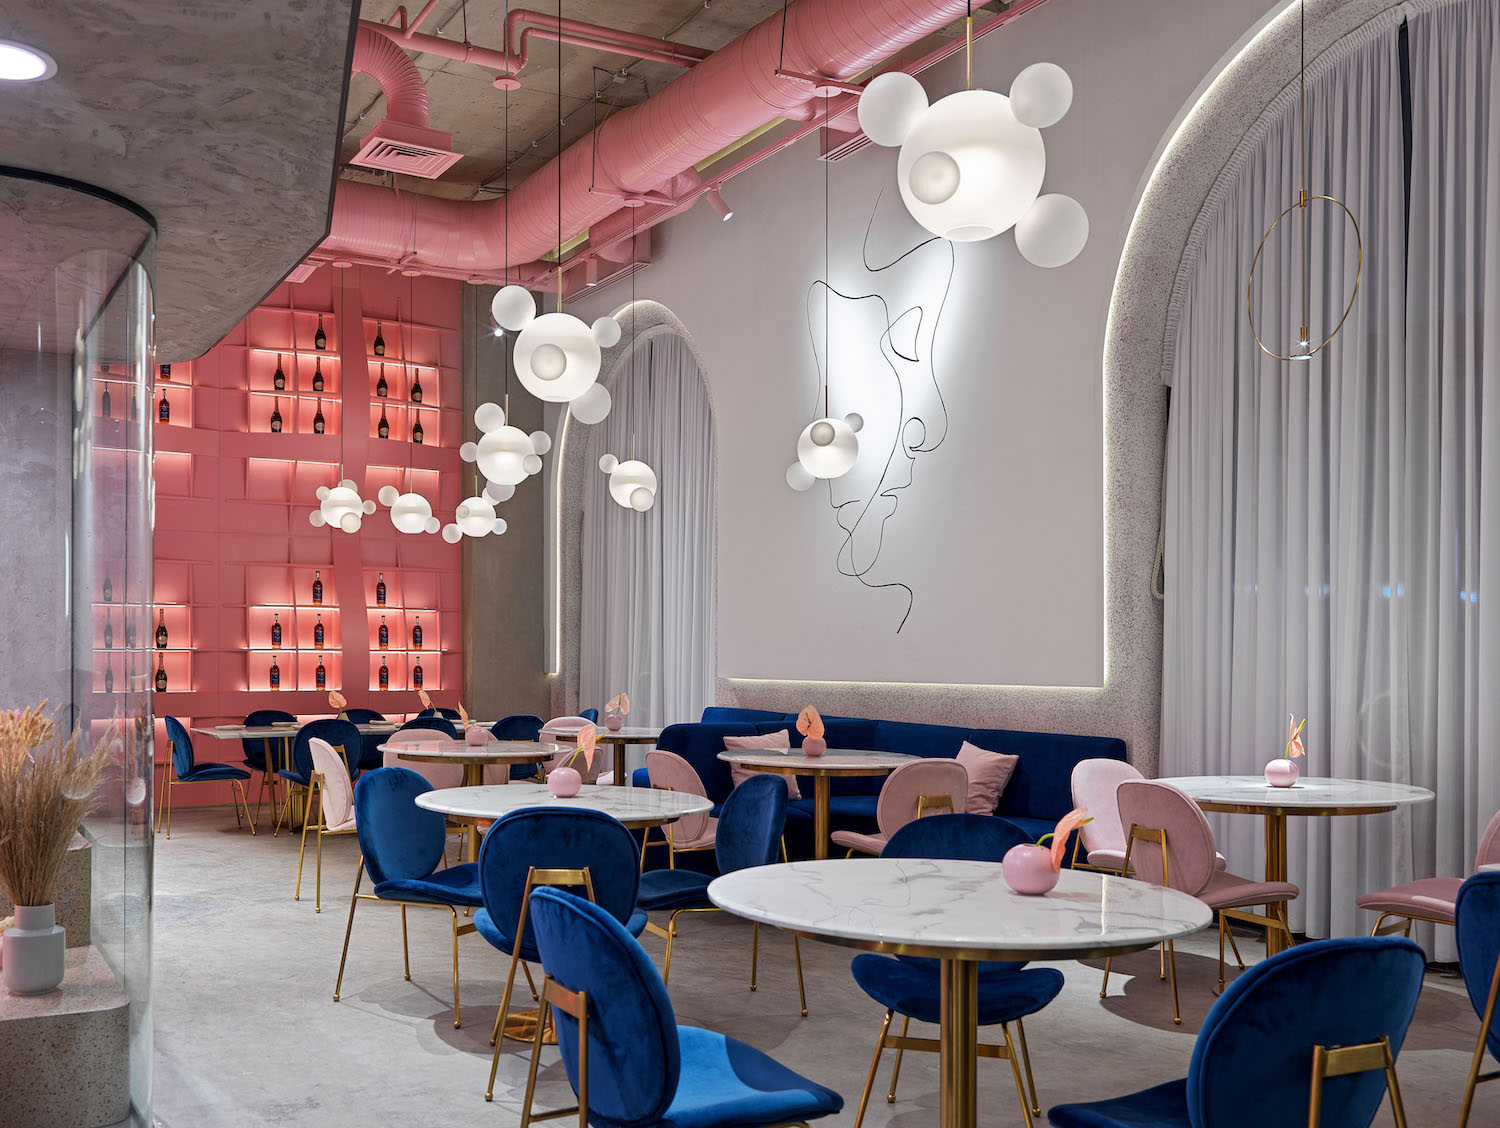 restaurant with dining table, chairs and pink pipes in the ceiling